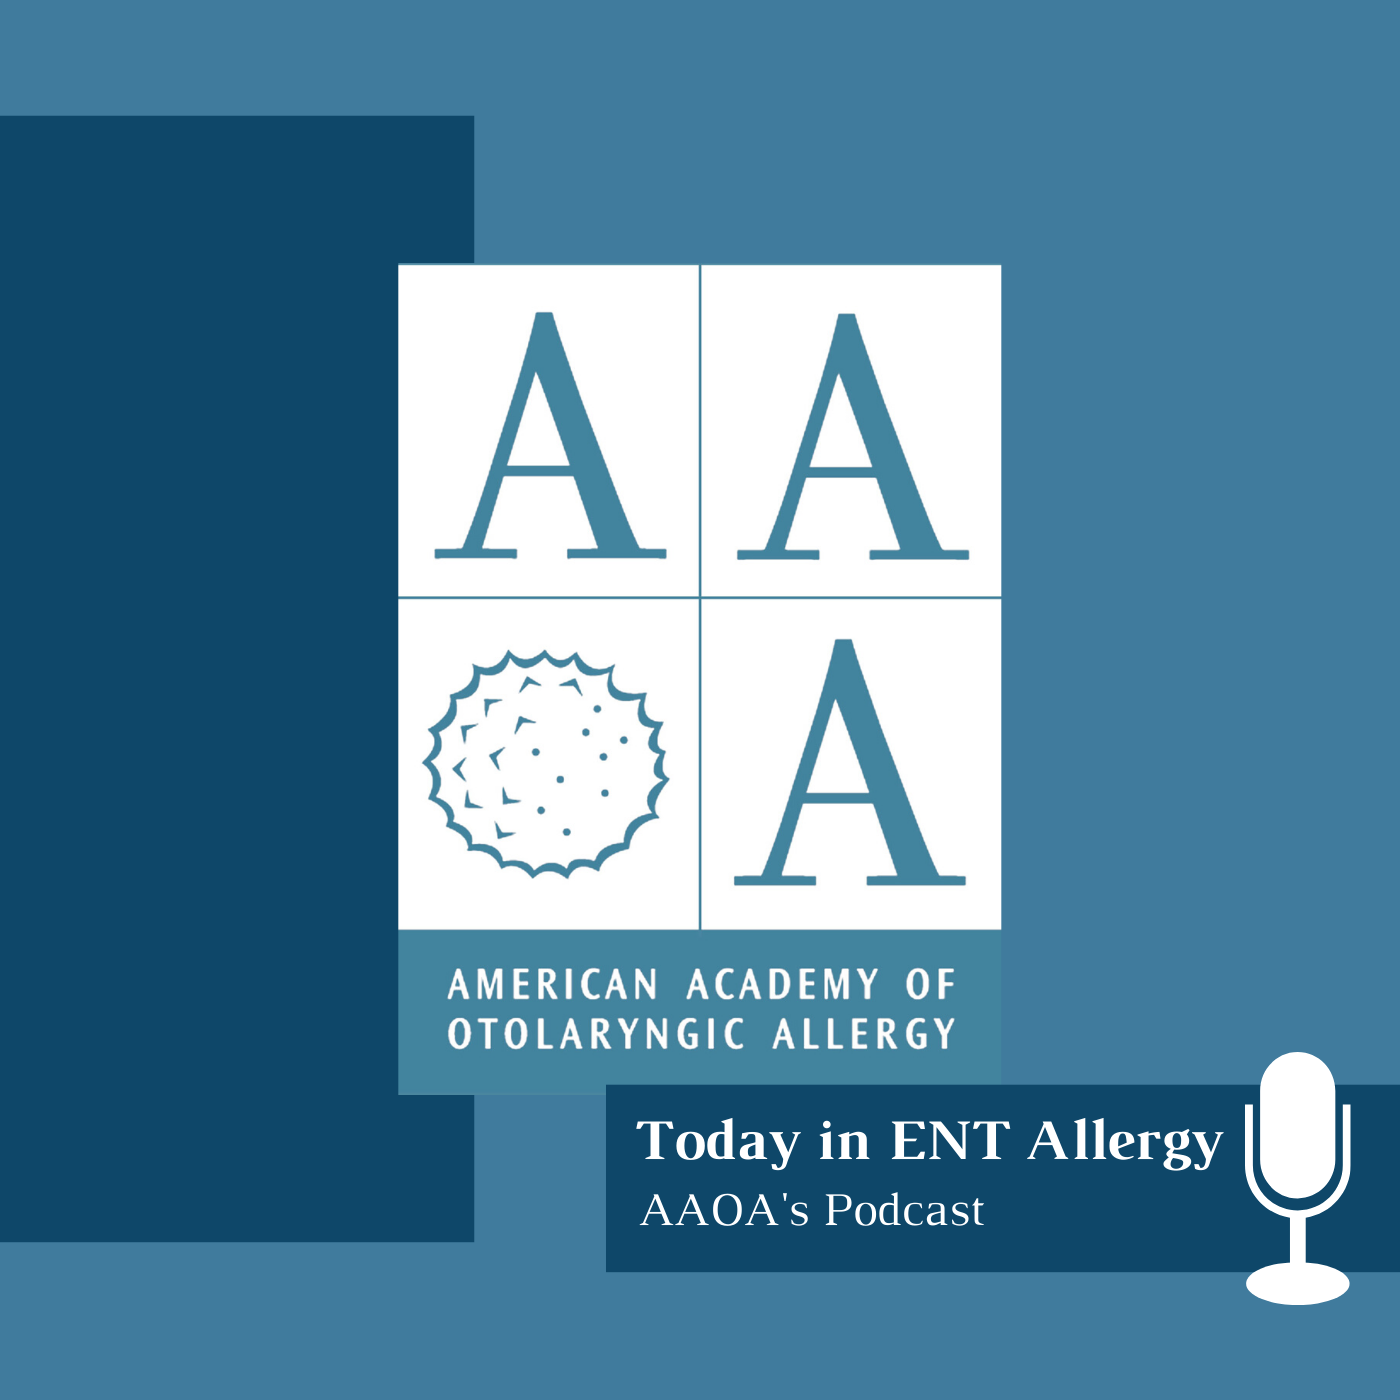 Today in ENT Allergy: AAOA's Podcast